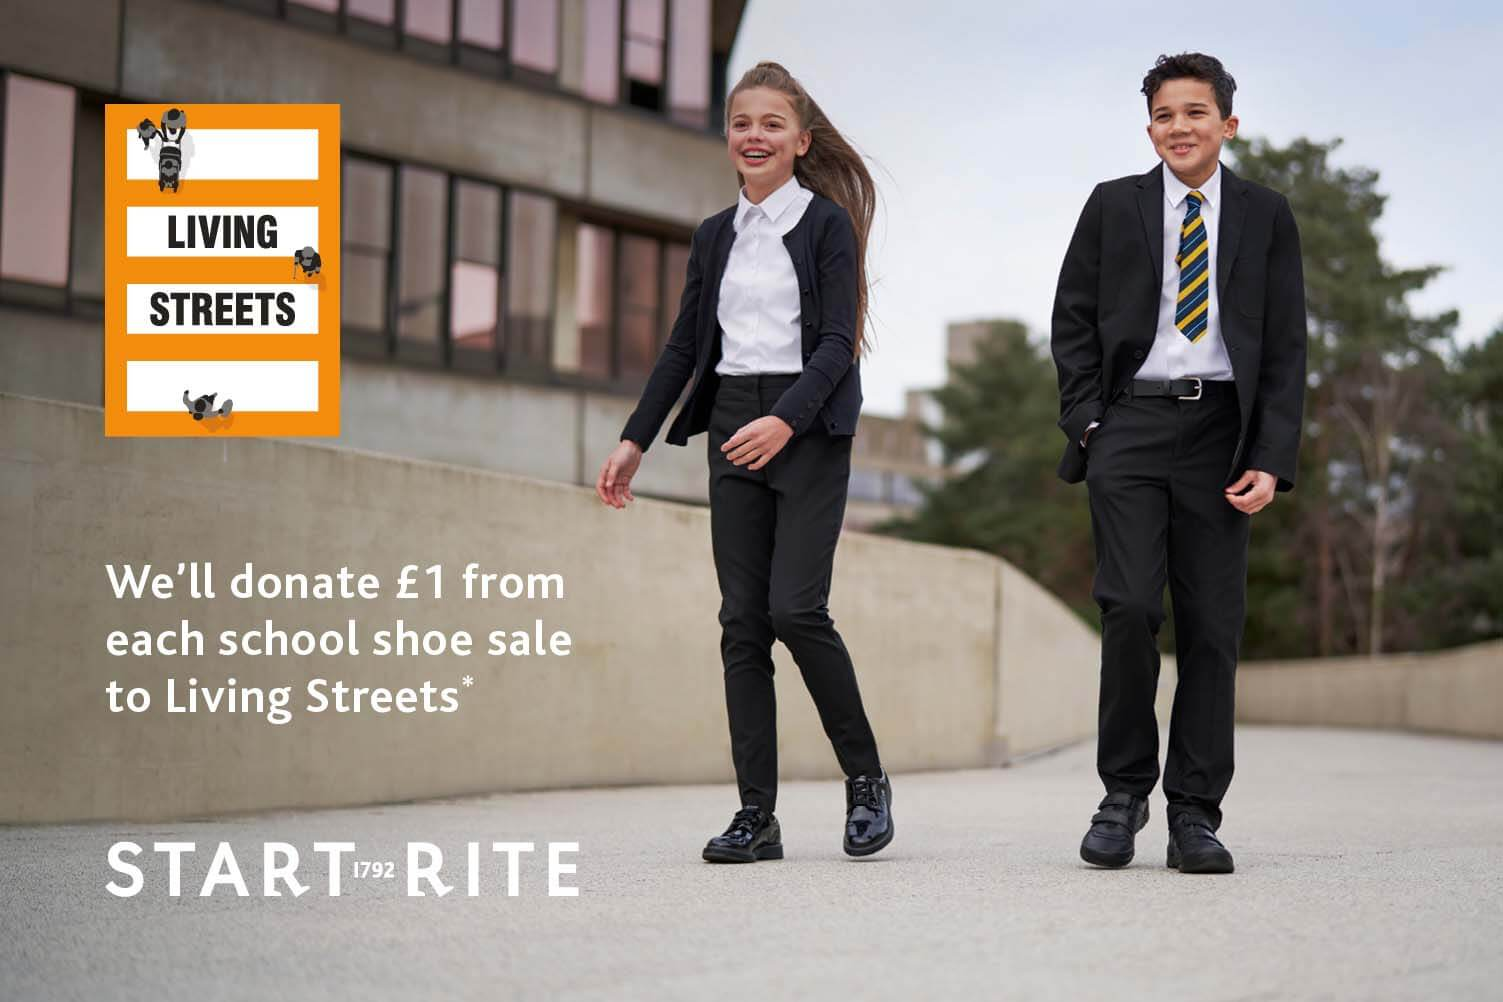 We'll donate £1 from each school shoe sale to Living Streets*